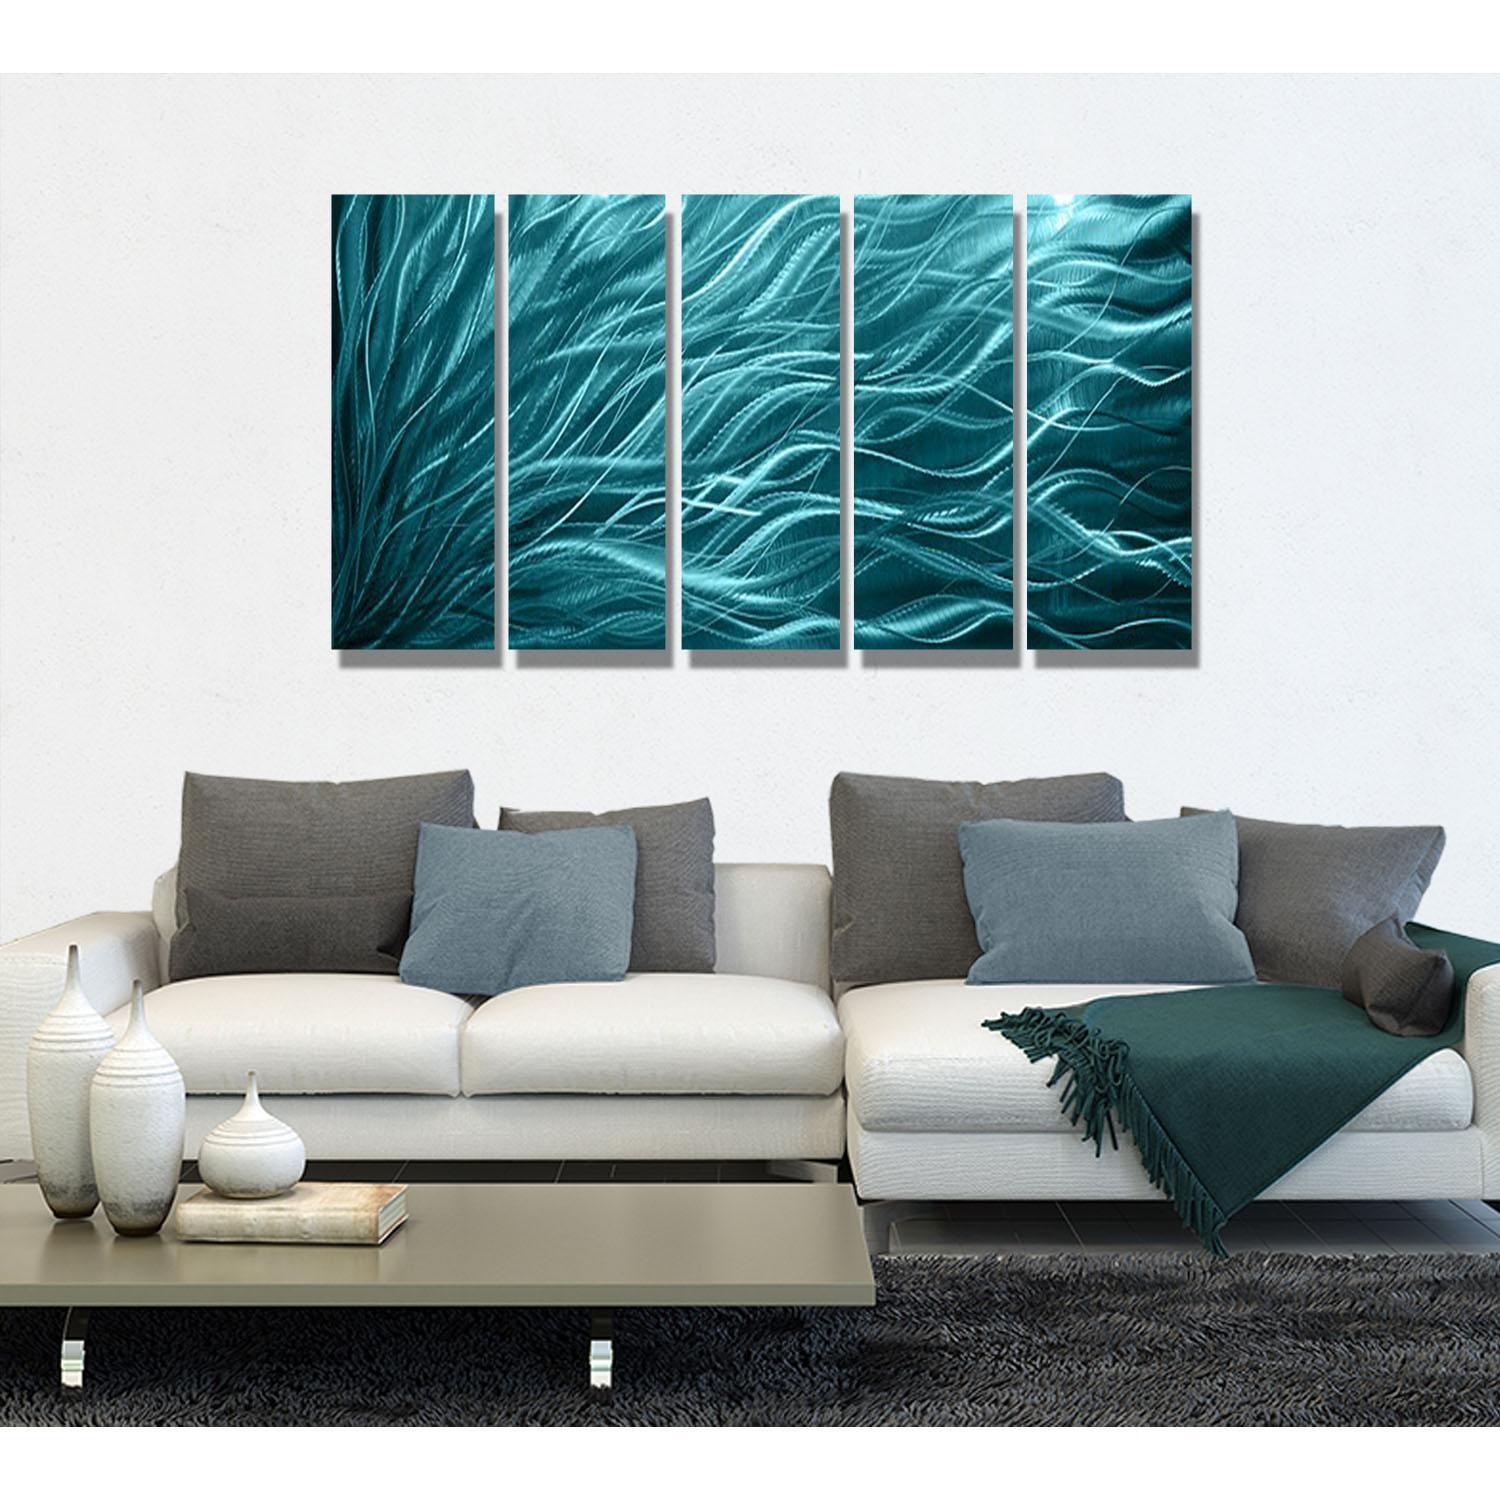 Aqua Sea Grass – Aqua Blue Metal Wall Art – 5 Panel Wall Décor In Teal Metal Wall Art (View 12 of 20)